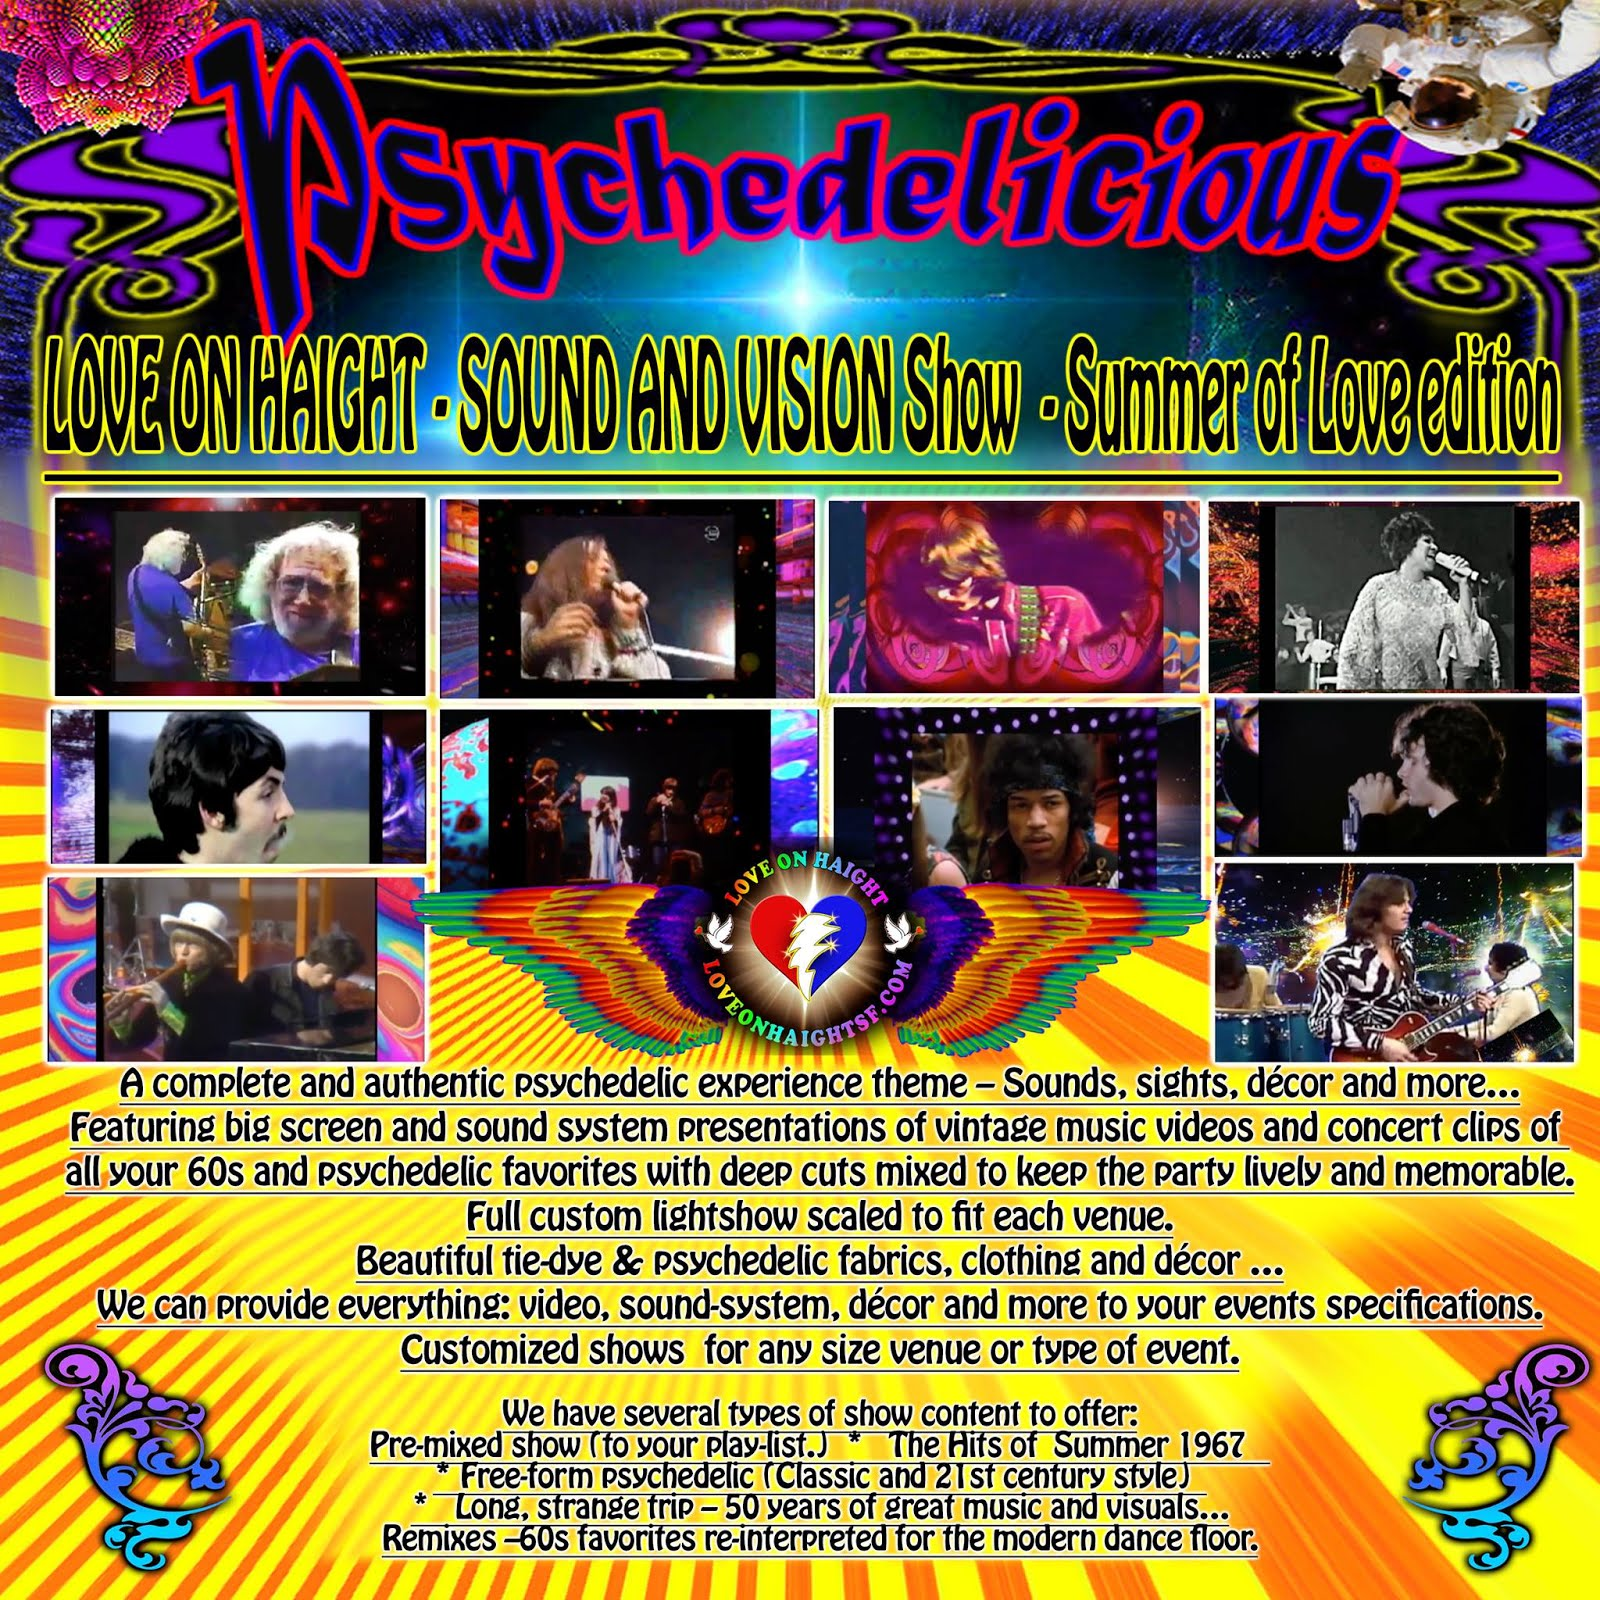 Psychedelicious :Bring a psychedelic experience to your events with video, sound, lights and decor!